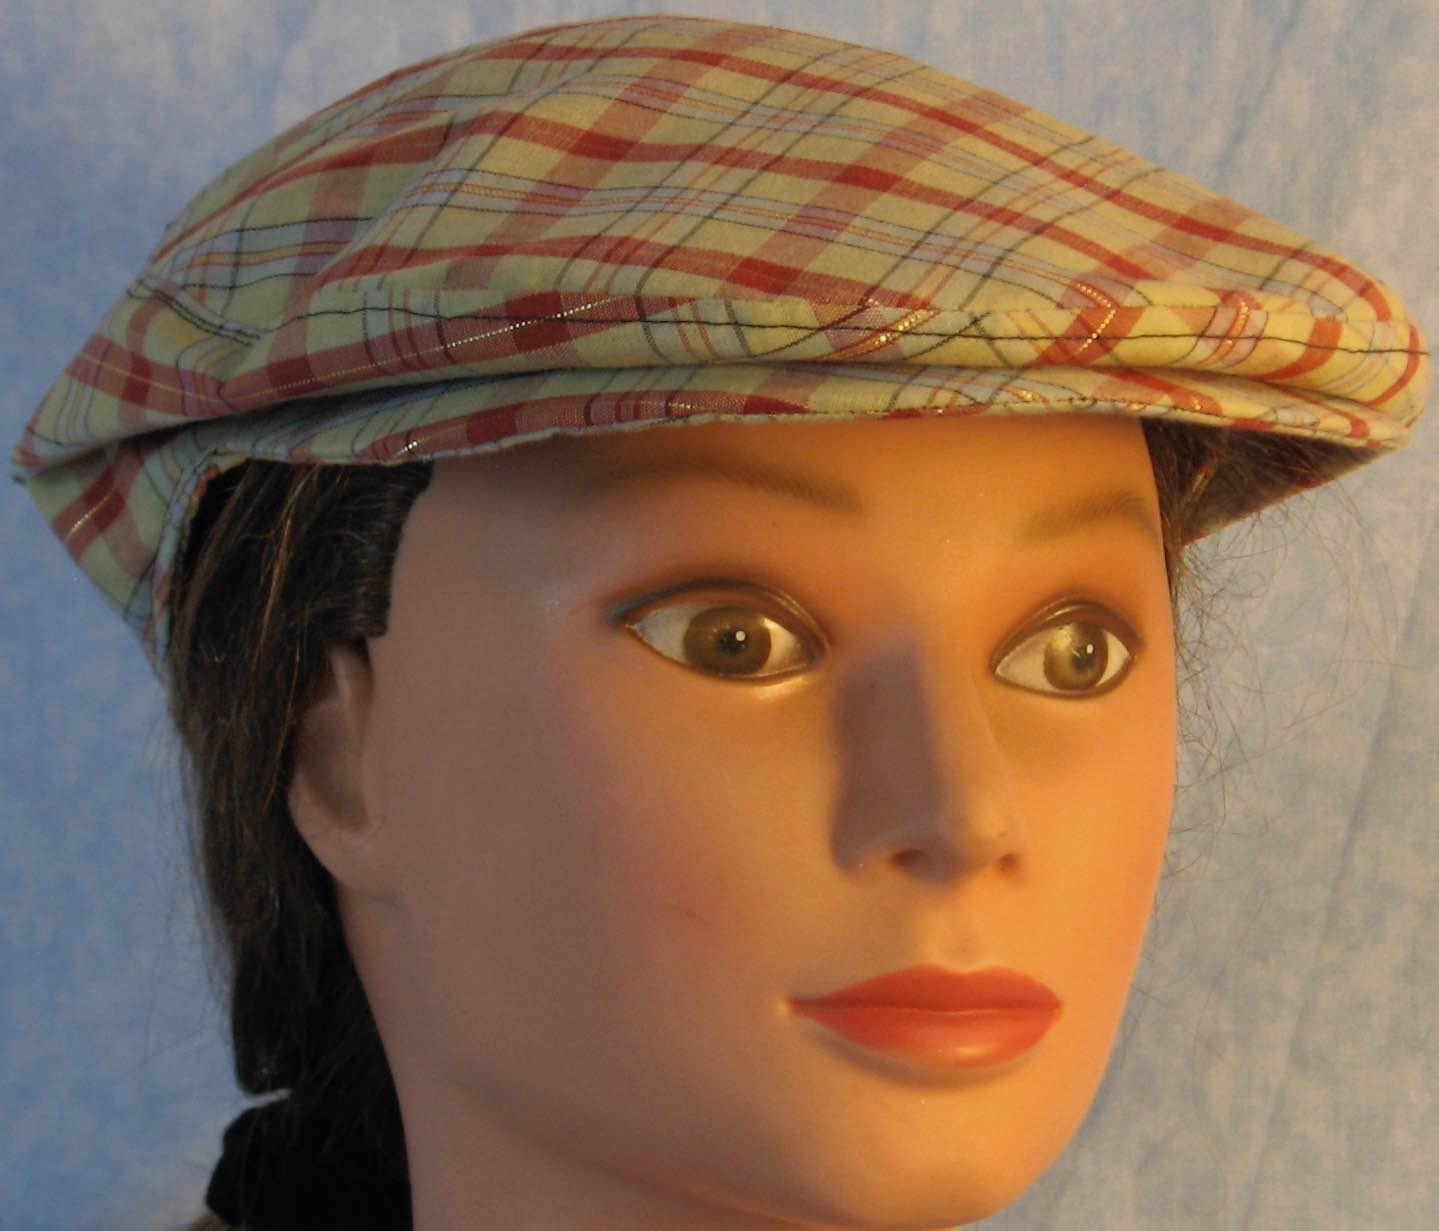 Flat Cap in Red Blue Gold Tan Plaid - Adult M-XL